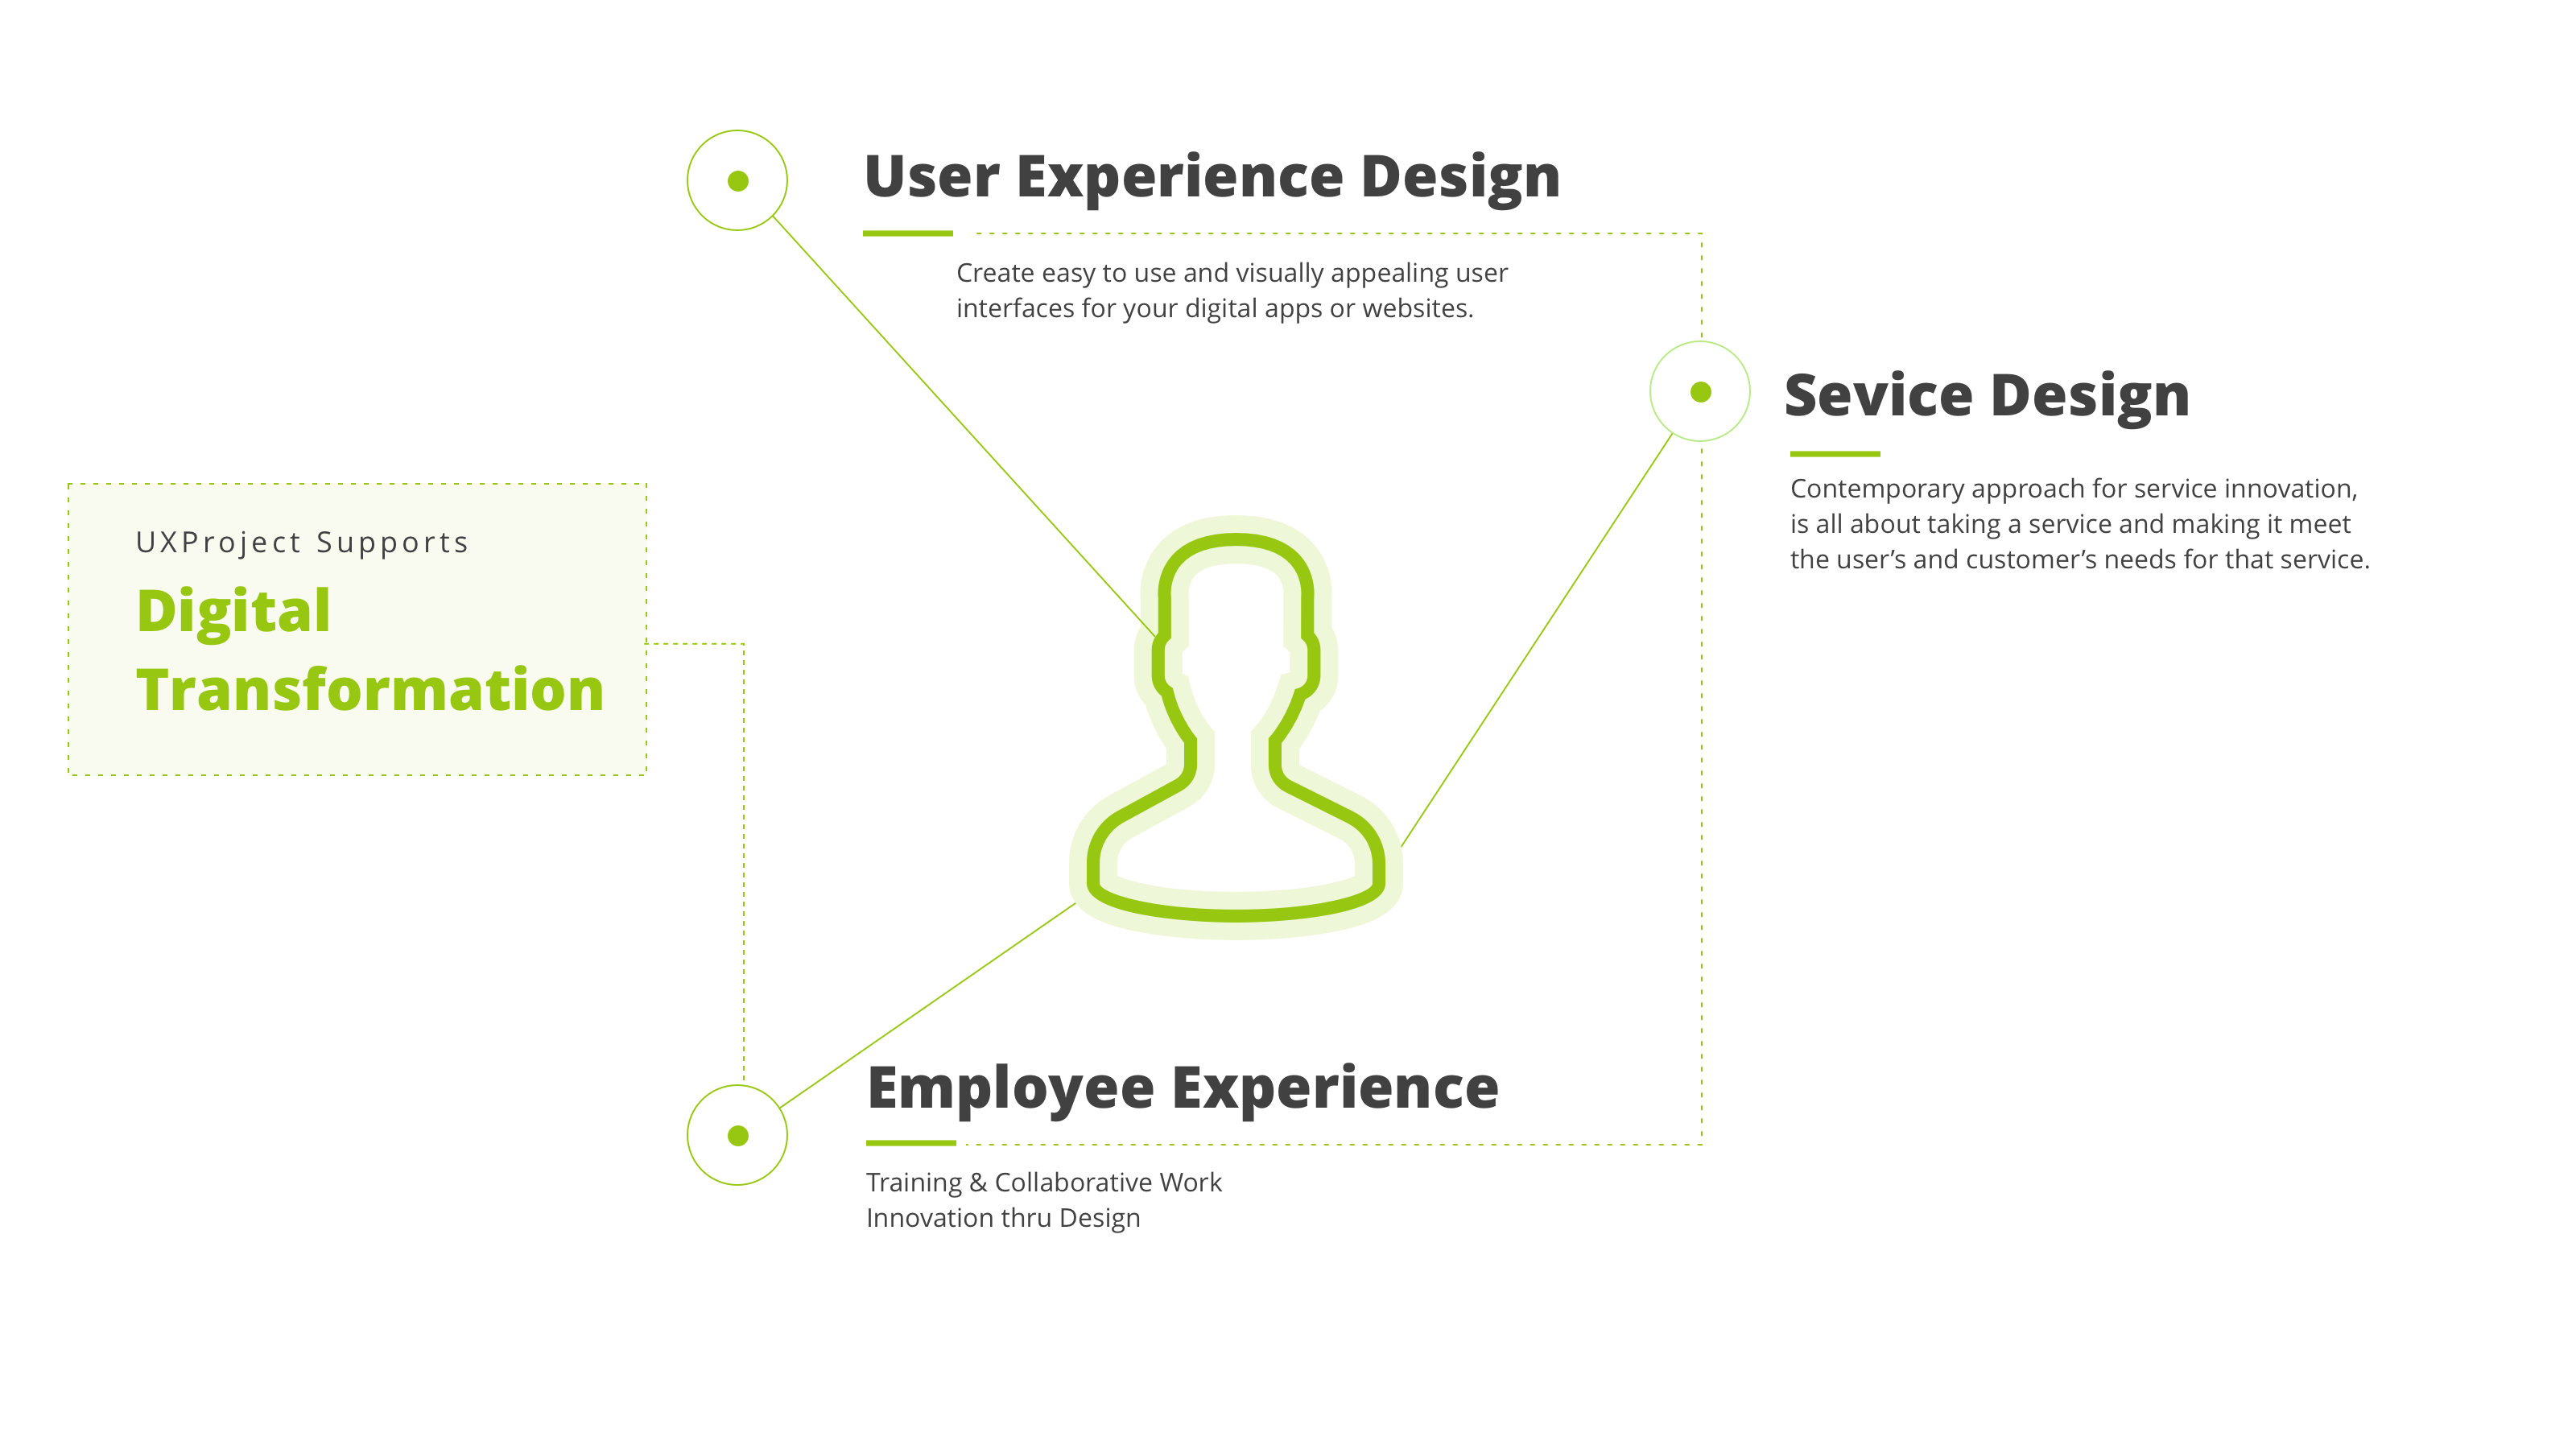 E ON - Support for Digital Transformation - UX Project